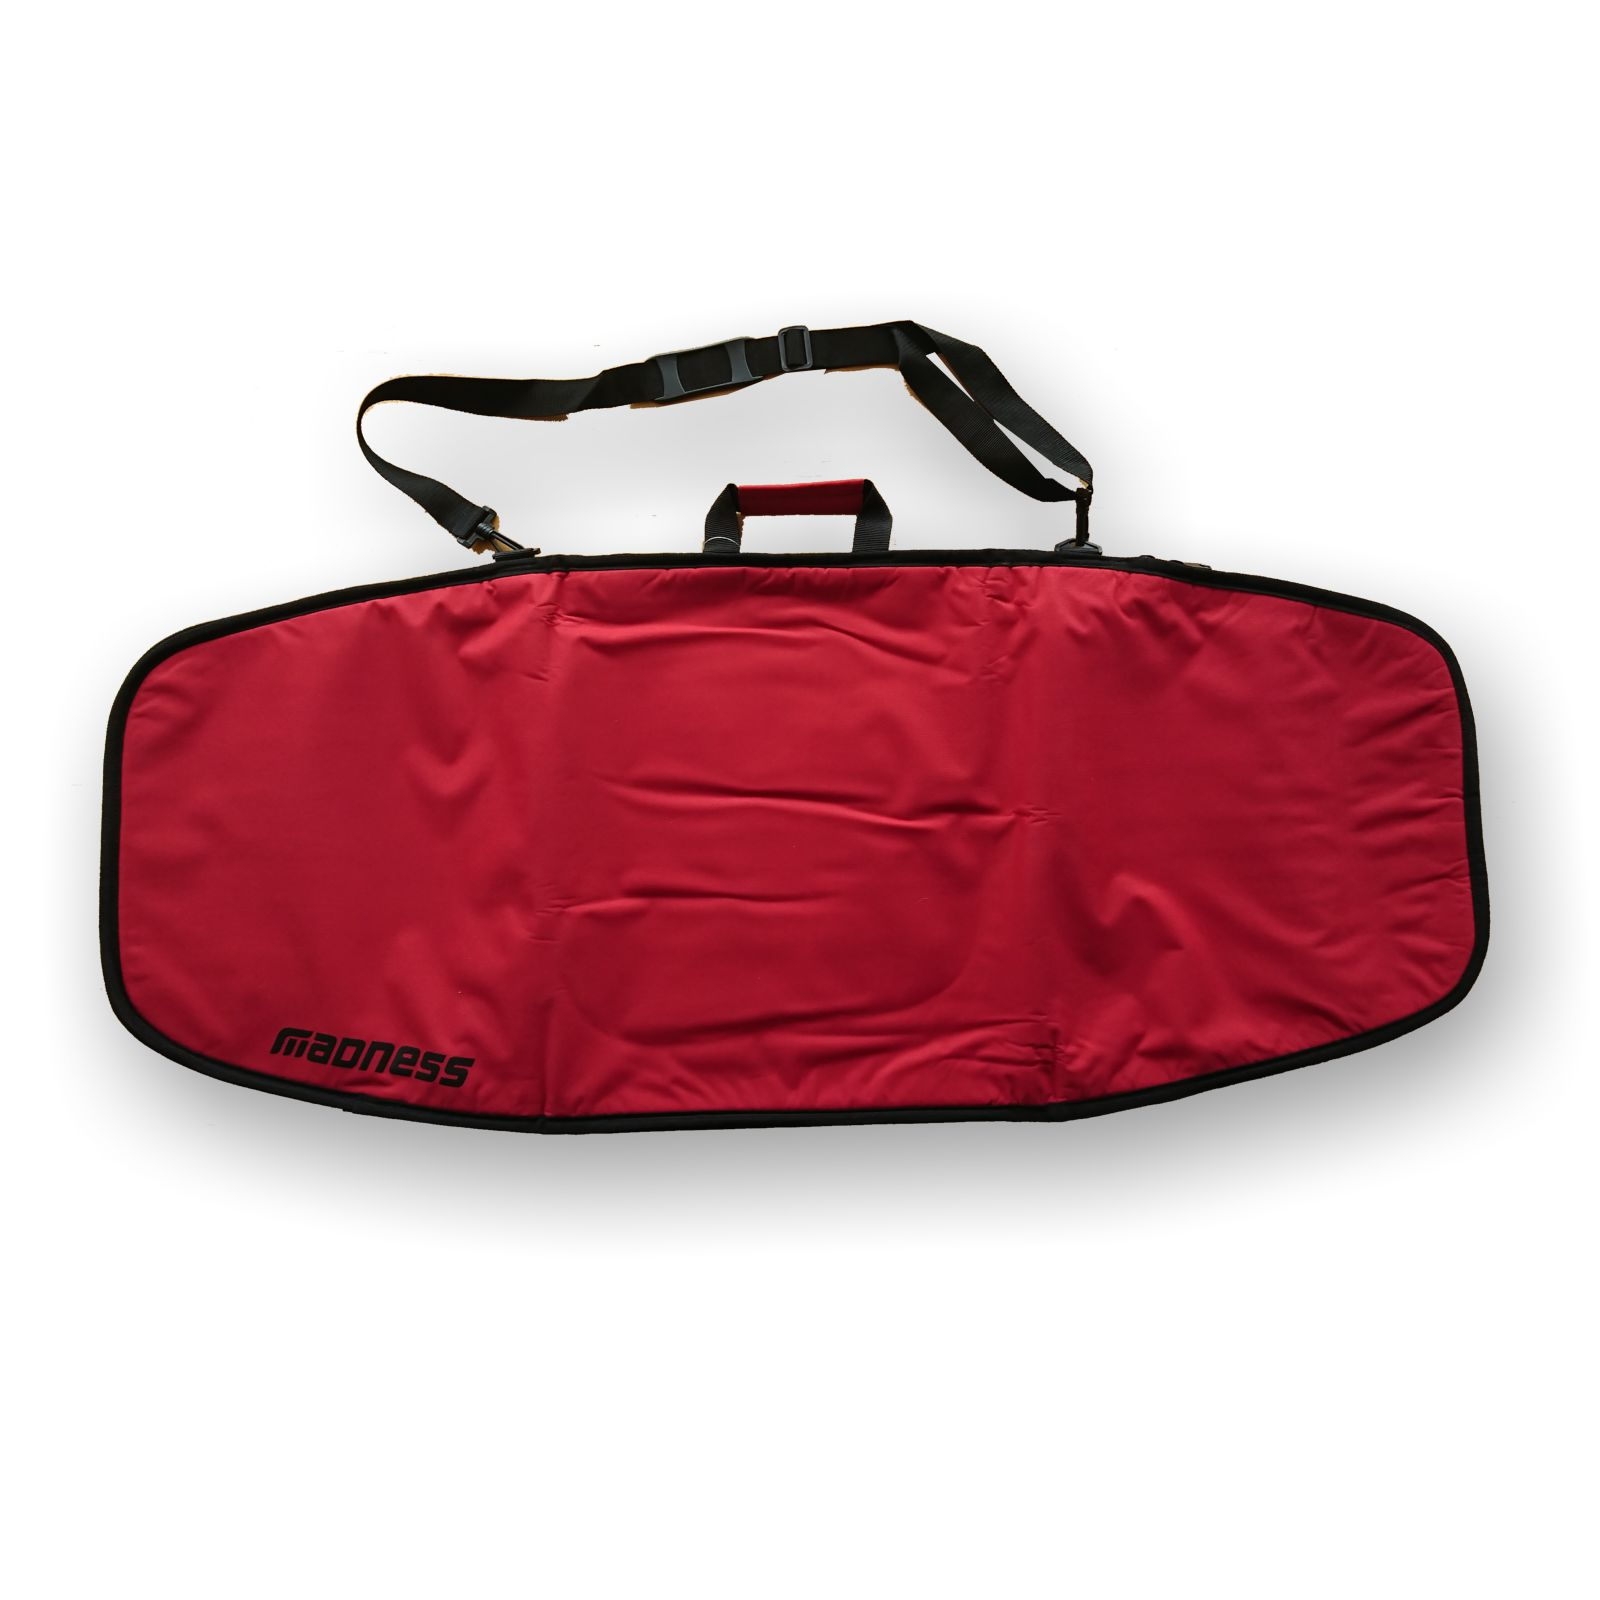 MADNESS Kiteboard Bag 135x50